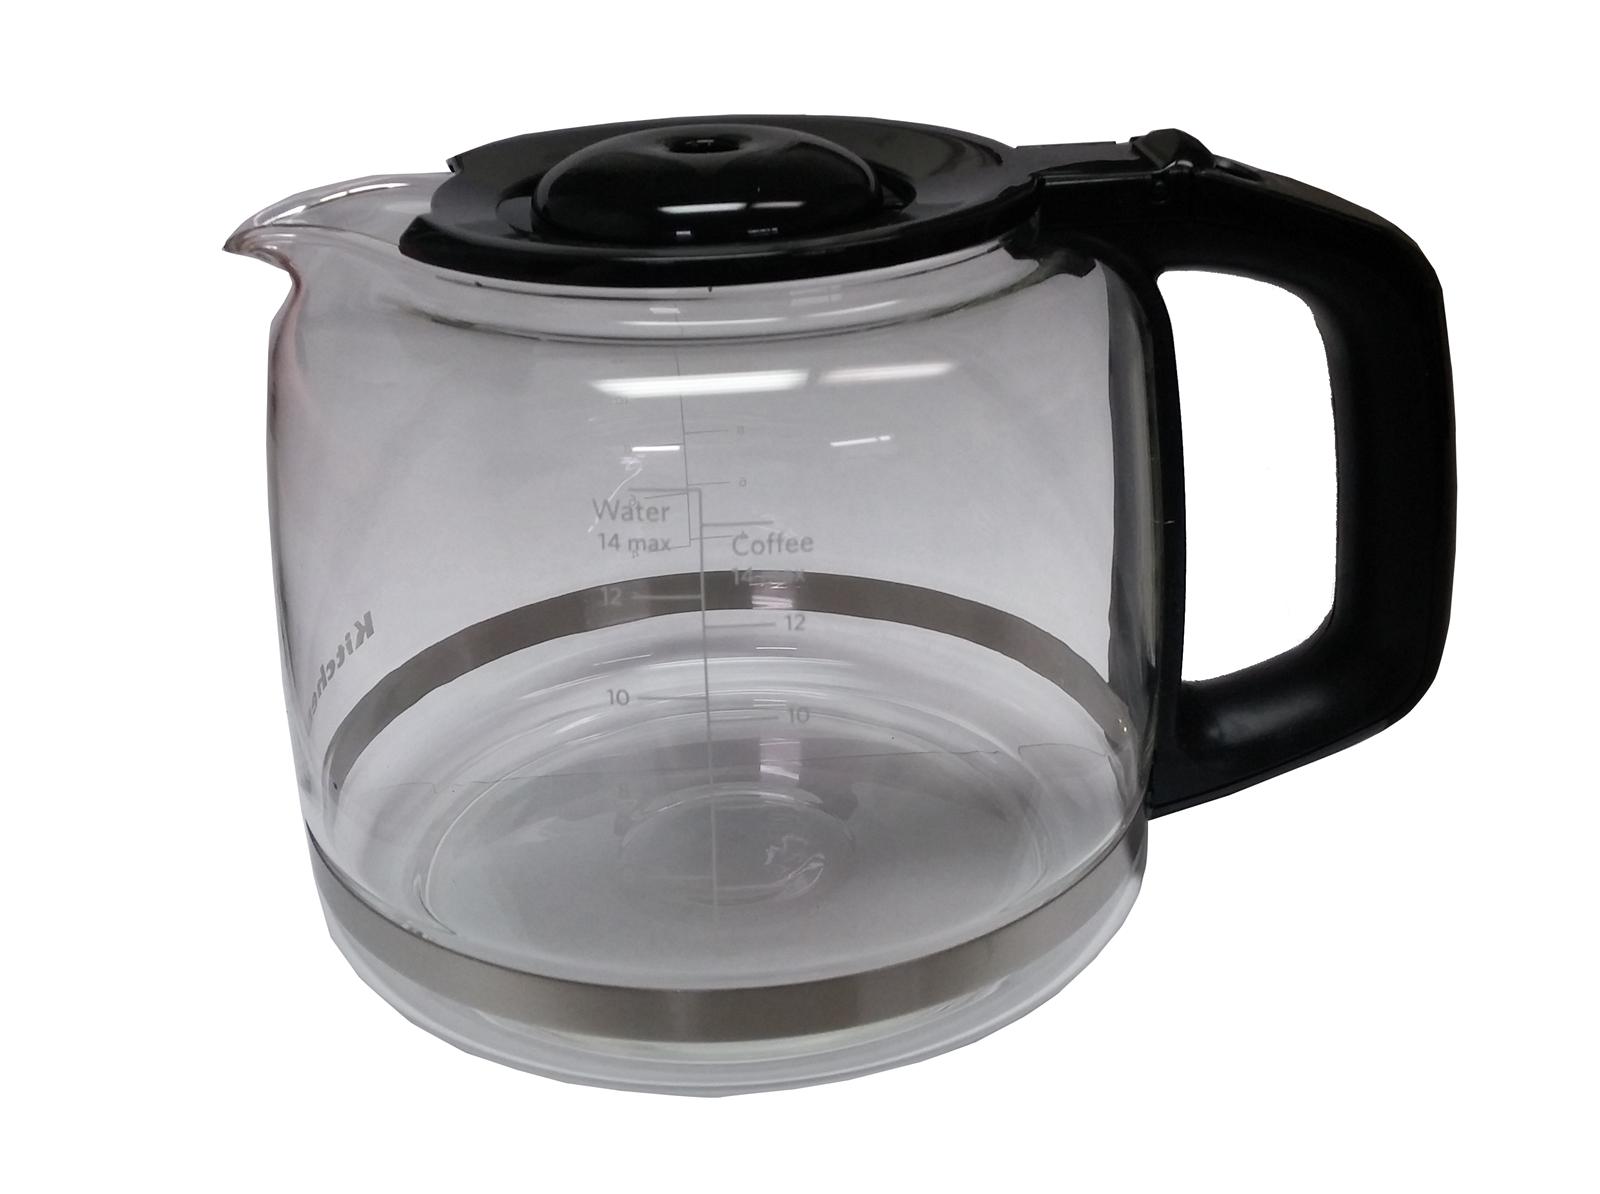 Kitchenaid replacement carafe photo - 3